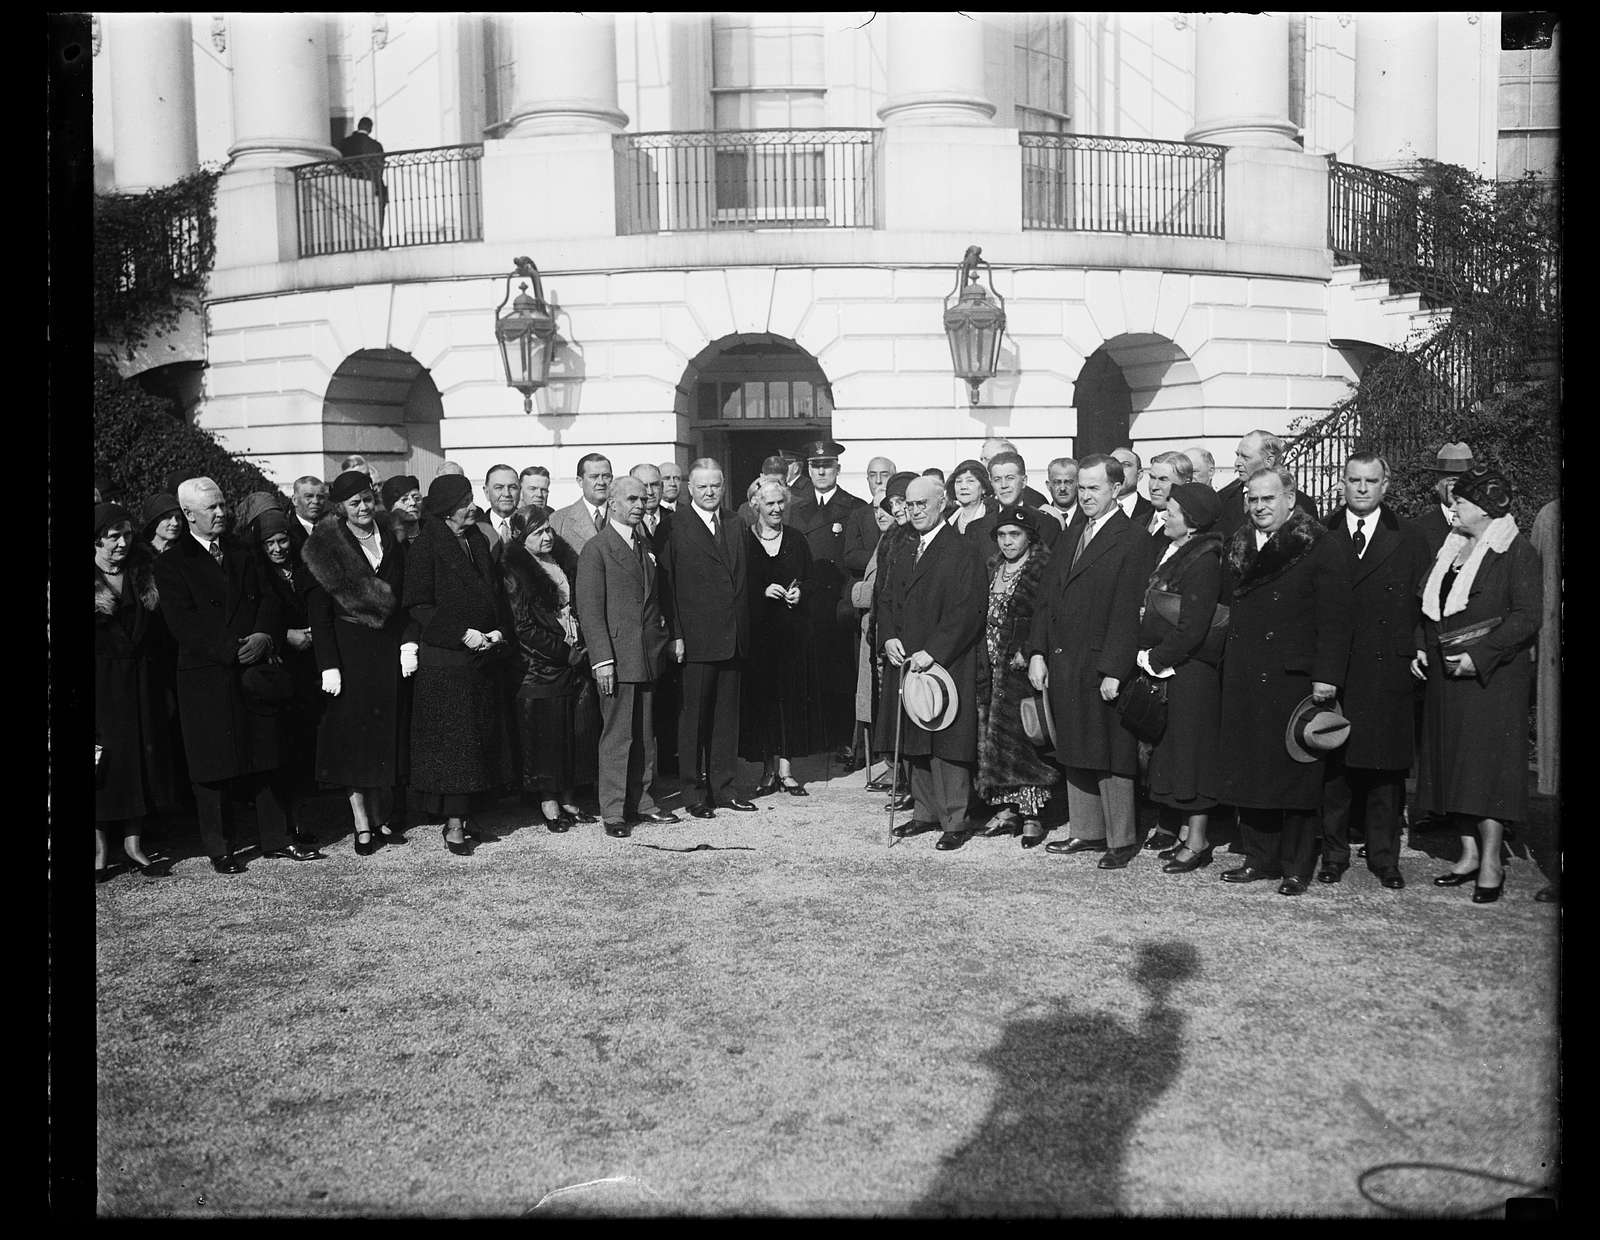 Herbert Hoover and Lou Hoover with group outside White House, Washington, D.C.